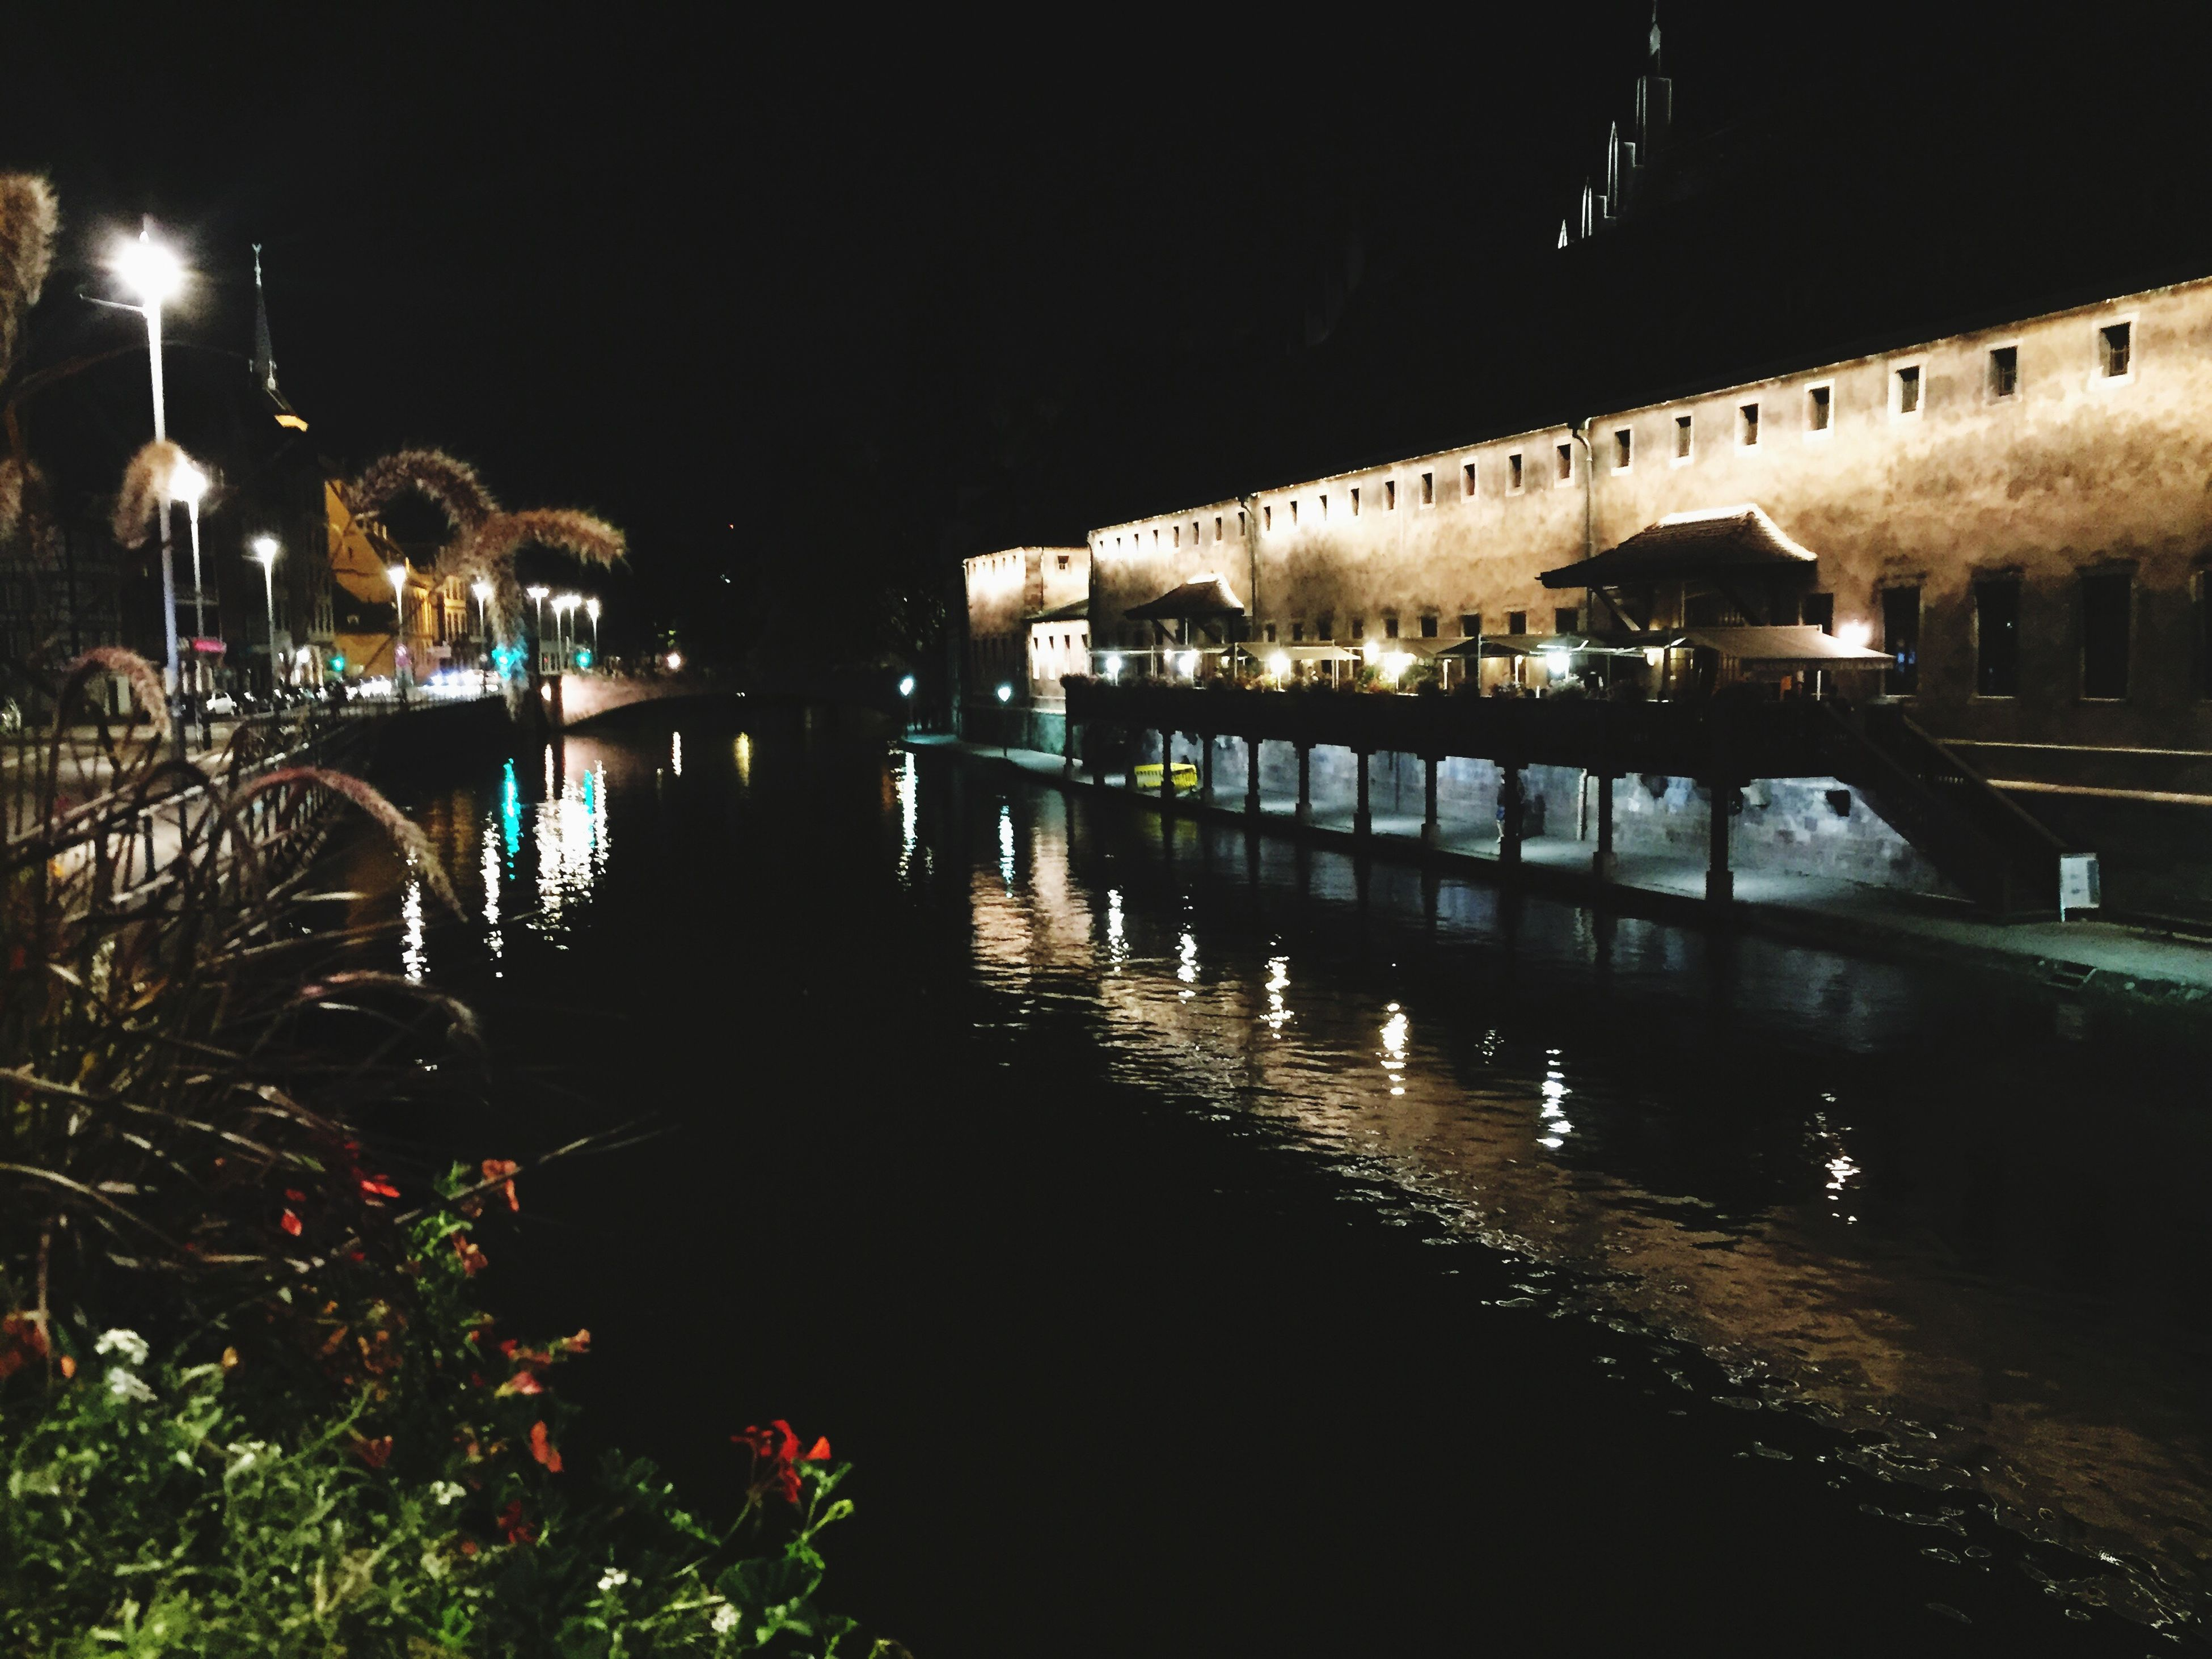 water, illuminated, night, reflection, architecture, building exterior, waterfront, tranquility, sky, calm, in a row, tranquil scene, scenics, outdoors, standing water, no people, footpath